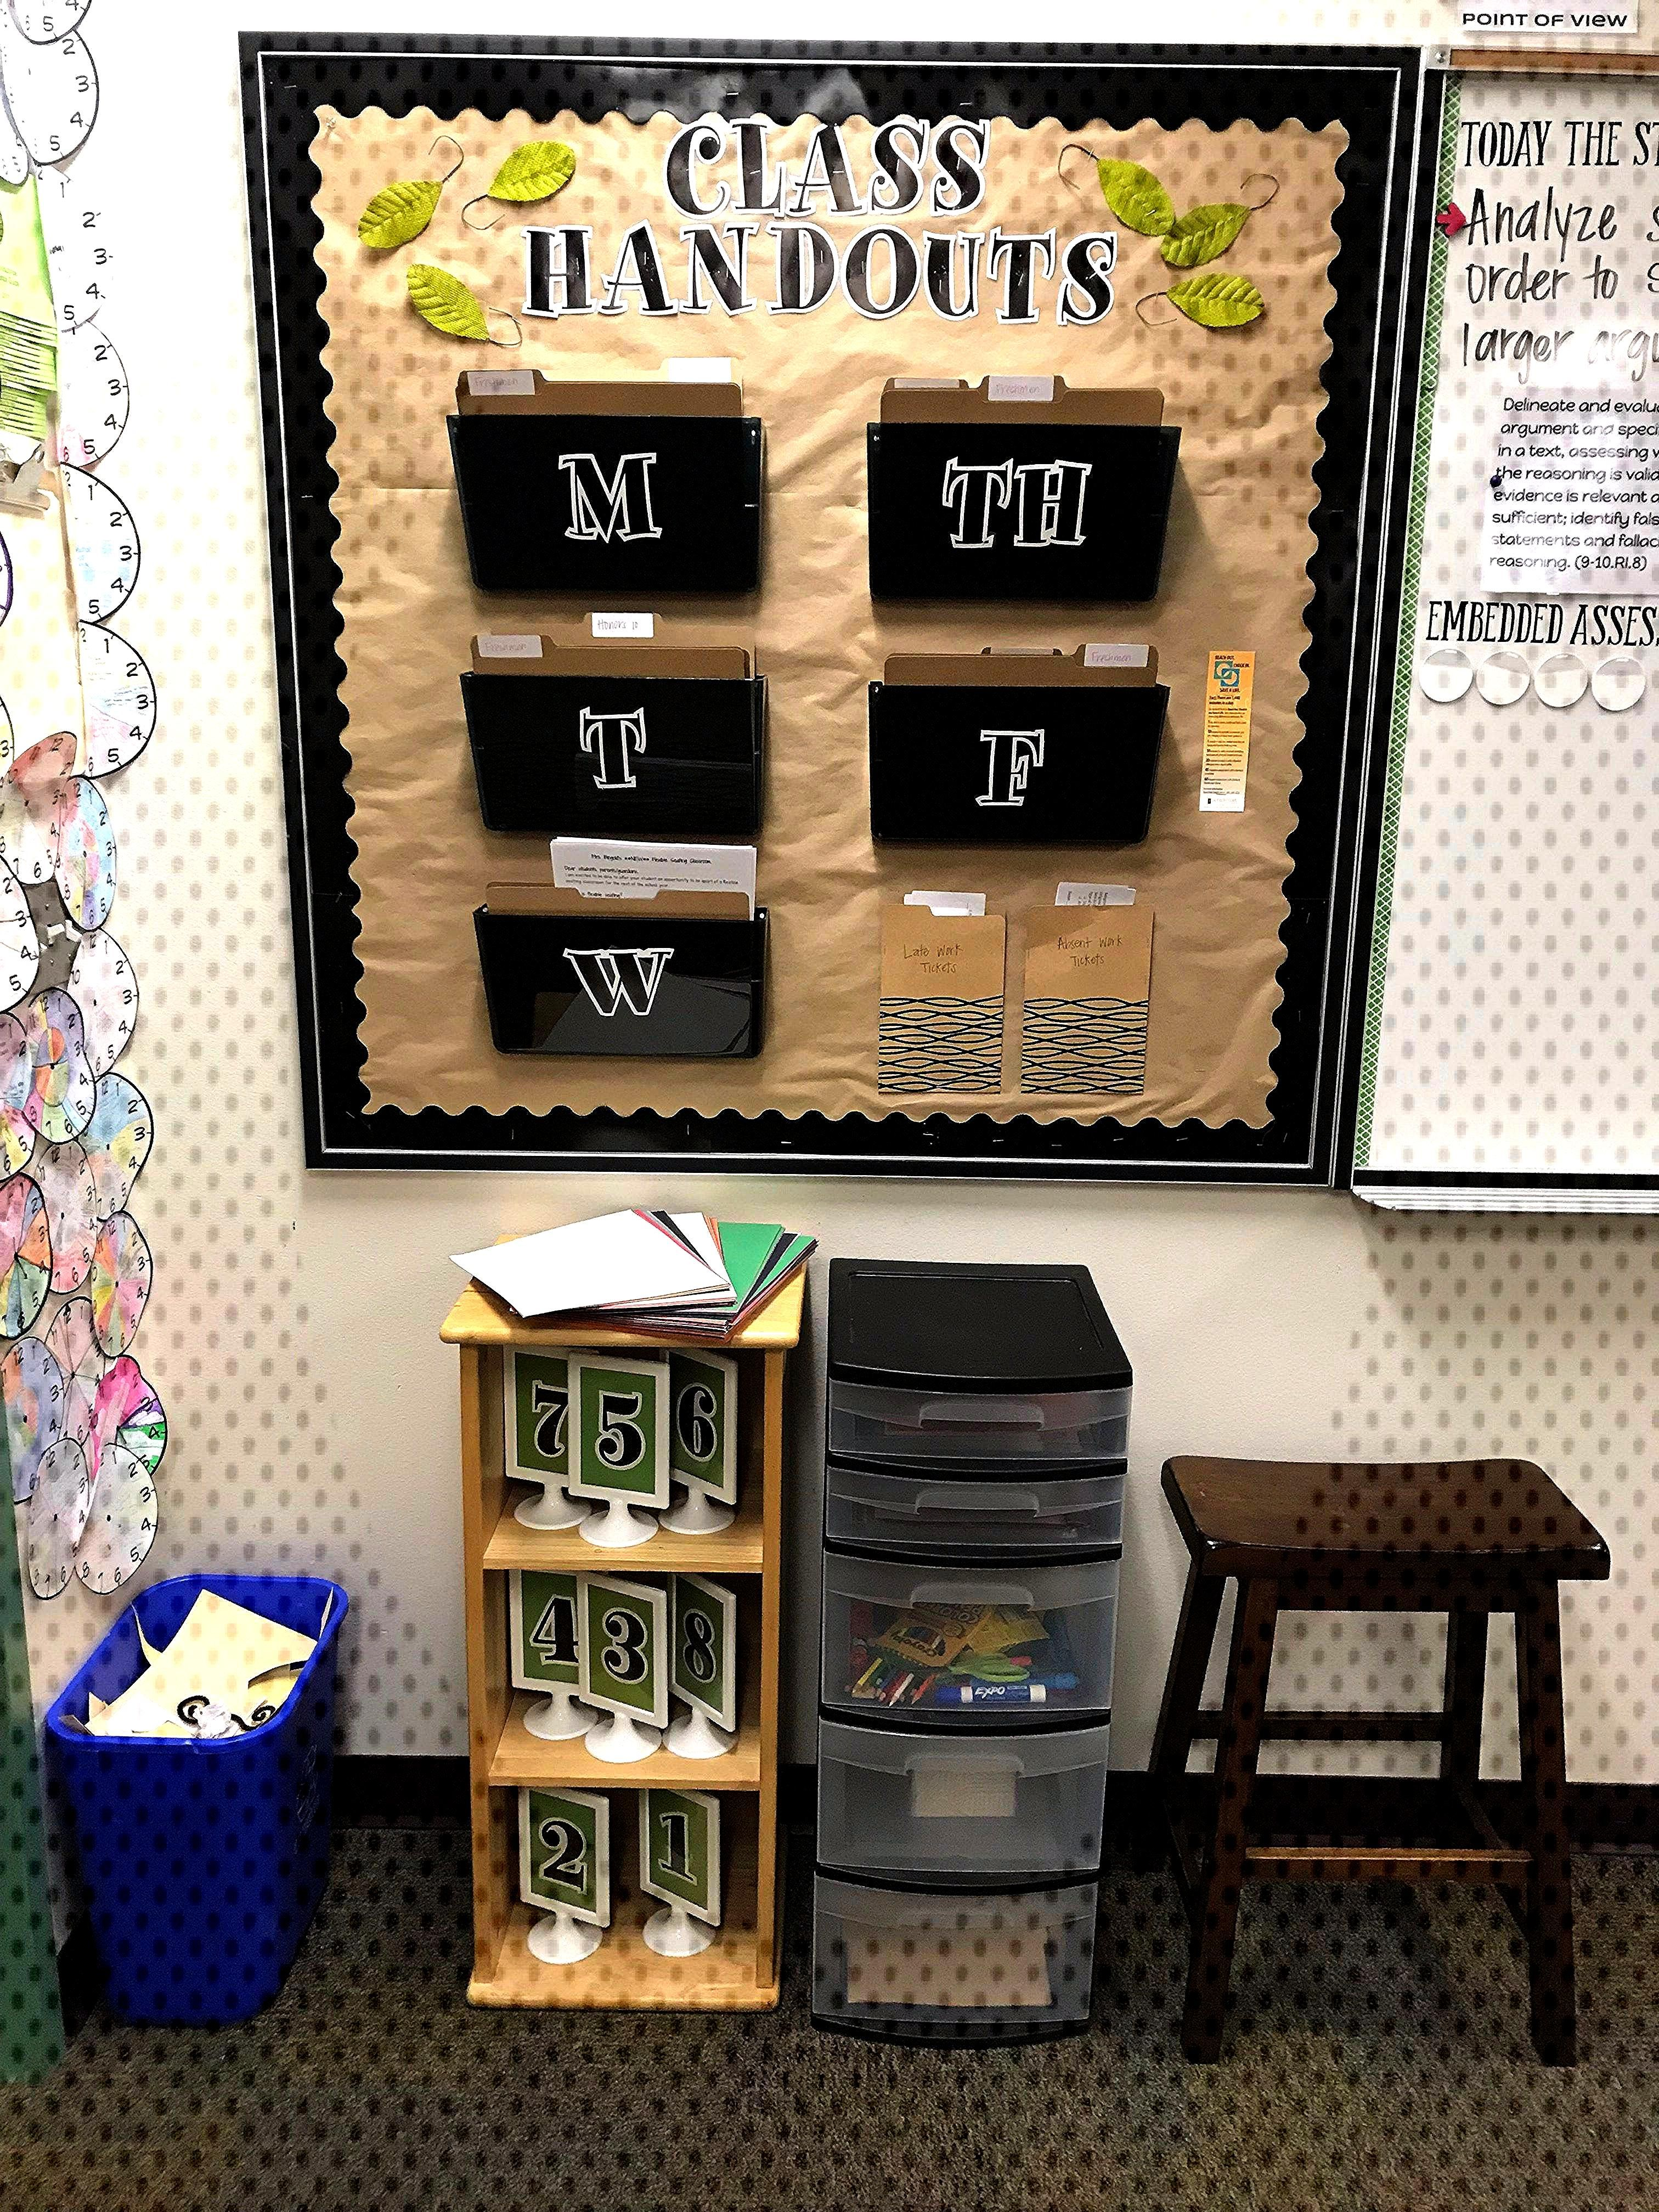 Flexible Seating and Classroom Organization in High School